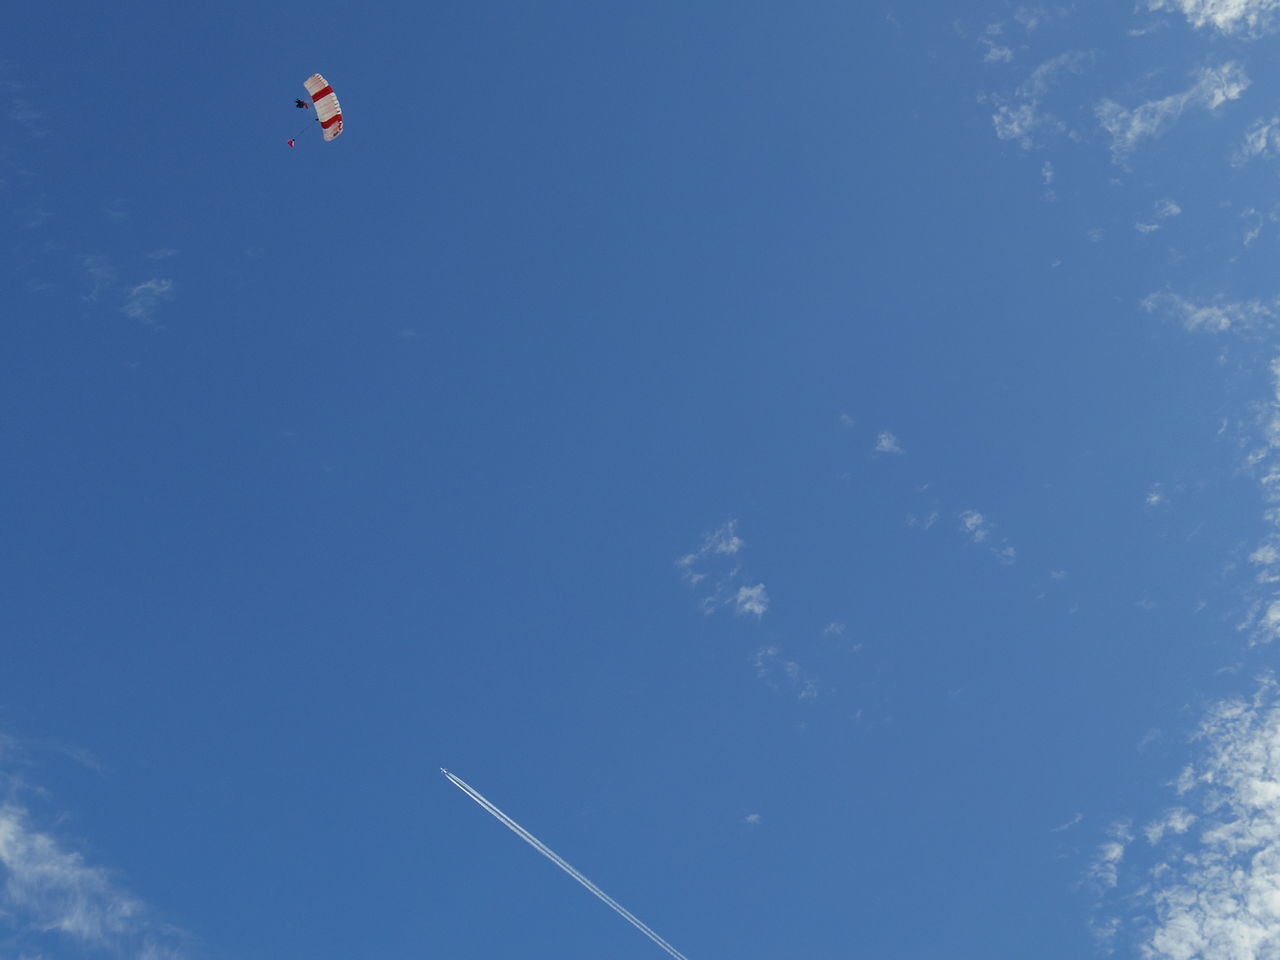 low angle view, blue, sky, day, nature, vapor trail, flying, outdoors, scenics, beauty in nature, contrail, no people